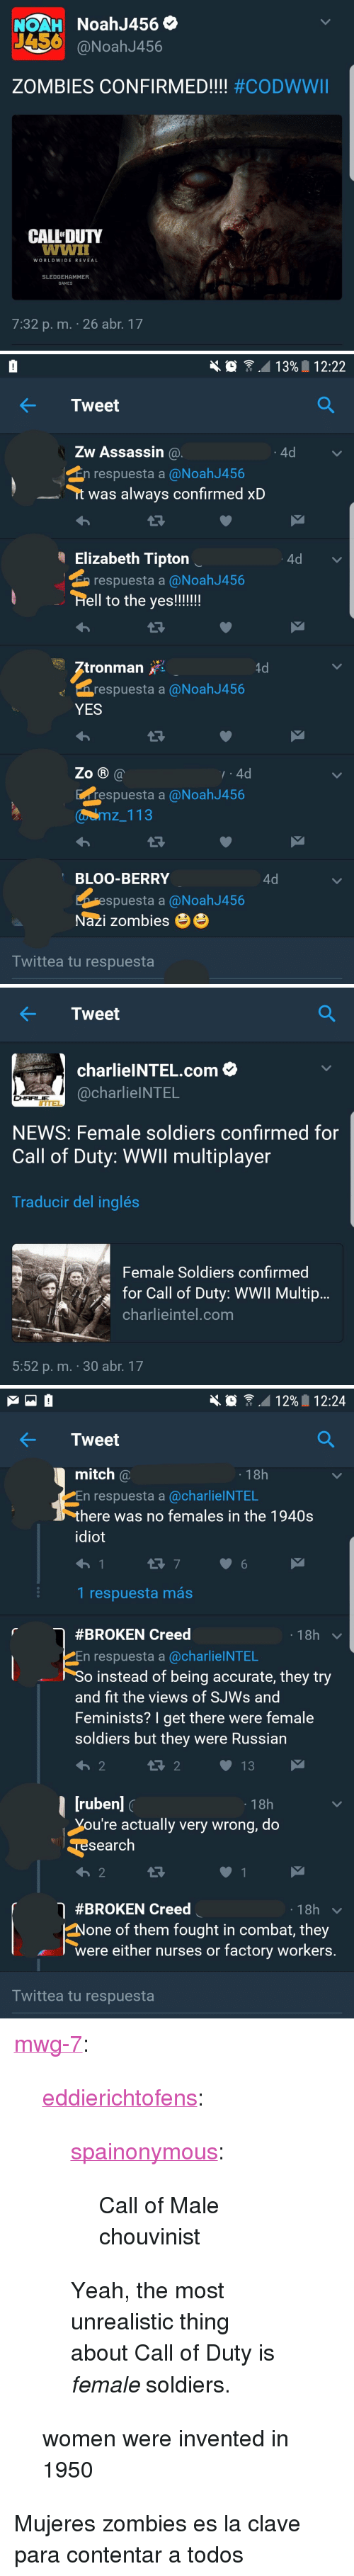 """News, Soldiers, and Tumblr: NOAH NoahJ456  456  @NoahJ456  ZOMBIES CONFIRMED!!! #CODWWII  CALLDUTY  OF  WORLDWIDE REVEAL  SLEDGEHAMMER  GAMES  7:32 p. m. . 26 abr 17   1 3%  12:22  ← Tweet  Zw Assassin @  4d  respuesta a @NoahJ456  t was always confirmed xD  Elizabeth Tipton  respuesta a @Noah J456  4d  tronman  respuesta a@NoahJ456  YES  .4d  espuesta a @NoahJ456  Zo B@  wemz 113  BLOO-BERRY  4d  spuesta a @NoahJ456  Nazi zombiesee  Iwittea tu respuesta   ← Tweet  charlieINTEL.com  @charlielNTEL  NEWS: Female soldiers confirmed for  Call of Duty: WWll multiplayer  Traducir del inglés  Female Soldiers confirmed  for Call of Duty: WWIl Multijp  charlieintel.com  5:52 p. m. 30 abr. 17   1 2%  1 2:24  KTweet  mitch @  En respuesta a @charlieINTEL  here was no females in the 1940s  diot  18h  1 respuesta más  #BROKEN Creed  18h  En respuesta a @charlielNTEL  o instead of being accurate, they try  and fit the views of SJWs and  Feminists? I get there were female  soldiers but they were Russian  18h  ou're actually very wrong, do  search  わ2  #BROKEN Creed  18h  None of them fought in combat, they  were either nurses or factory workers  Iwittea tu respuesta <p><a href=""""https://mwg-7.tumblr.com/post/160677429571/eddierichtofens-spainonymous-call-of-male"""" class=""""tumblr_blog"""">mwg-7</a>:</p> <blockquote> <p><a href=""""http://eddierichtofens.tumblr.com/post/160265787062/spainonymous-call-of-male-chouvinist-yeah-the"""" class=""""tumblr_blog"""">eddierichtofens</a>:</p>  <blockquote> <p><a href=""""http://spainonymous.tumblr.com/post/160210330919/call-of-male-chouvinist"""" class=""""tumblr_blog"""">spainonymous</a>:</p> <blockquote><p>Call of Male chouvinist</p></blockquote> <p>Yeah, the most unrealistic thing about Call of Duty is <i>female</i> soldiers.</p> </blockquote>  <p>women were invented in 1950</p> </blockquote>  <p>Mujeres zombies es la clave para contentar a todos</p>"""